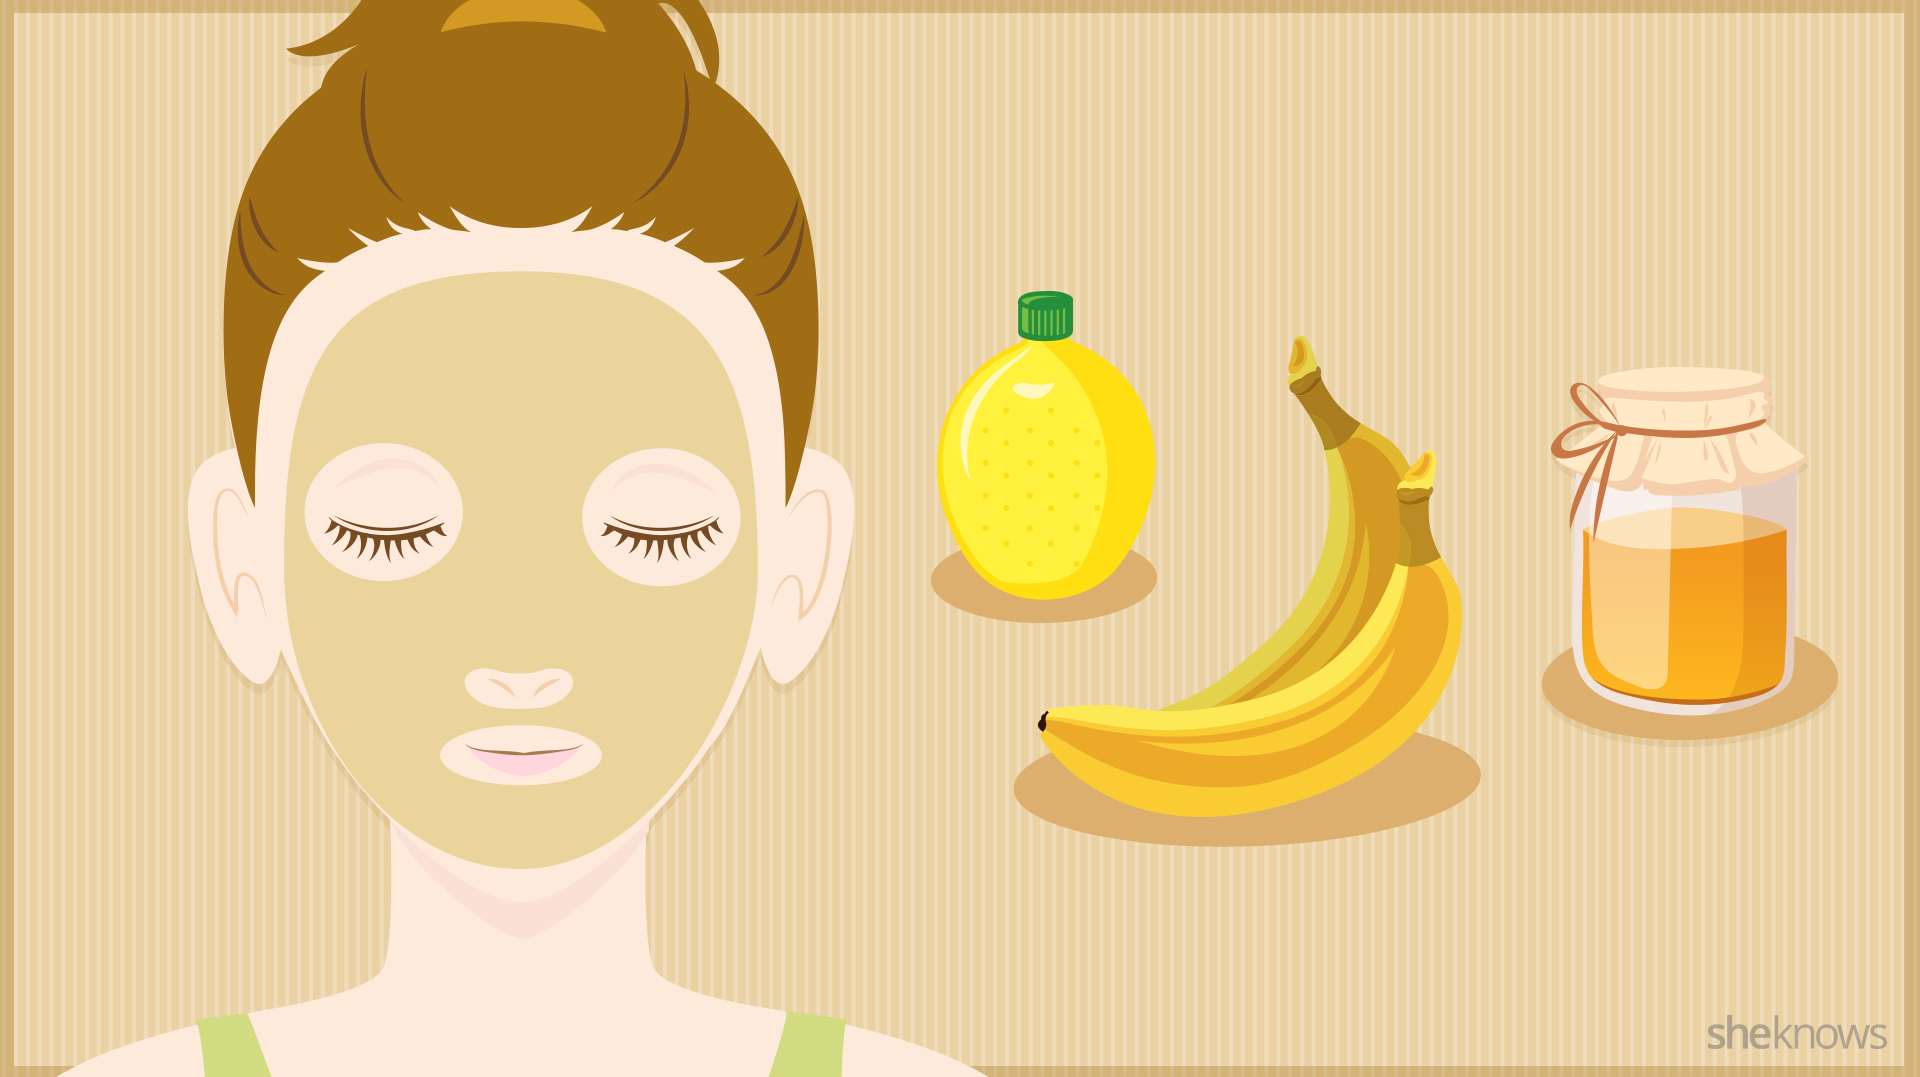 A Diy Banana Face Mask Your Skin Will Love You For Sheknows